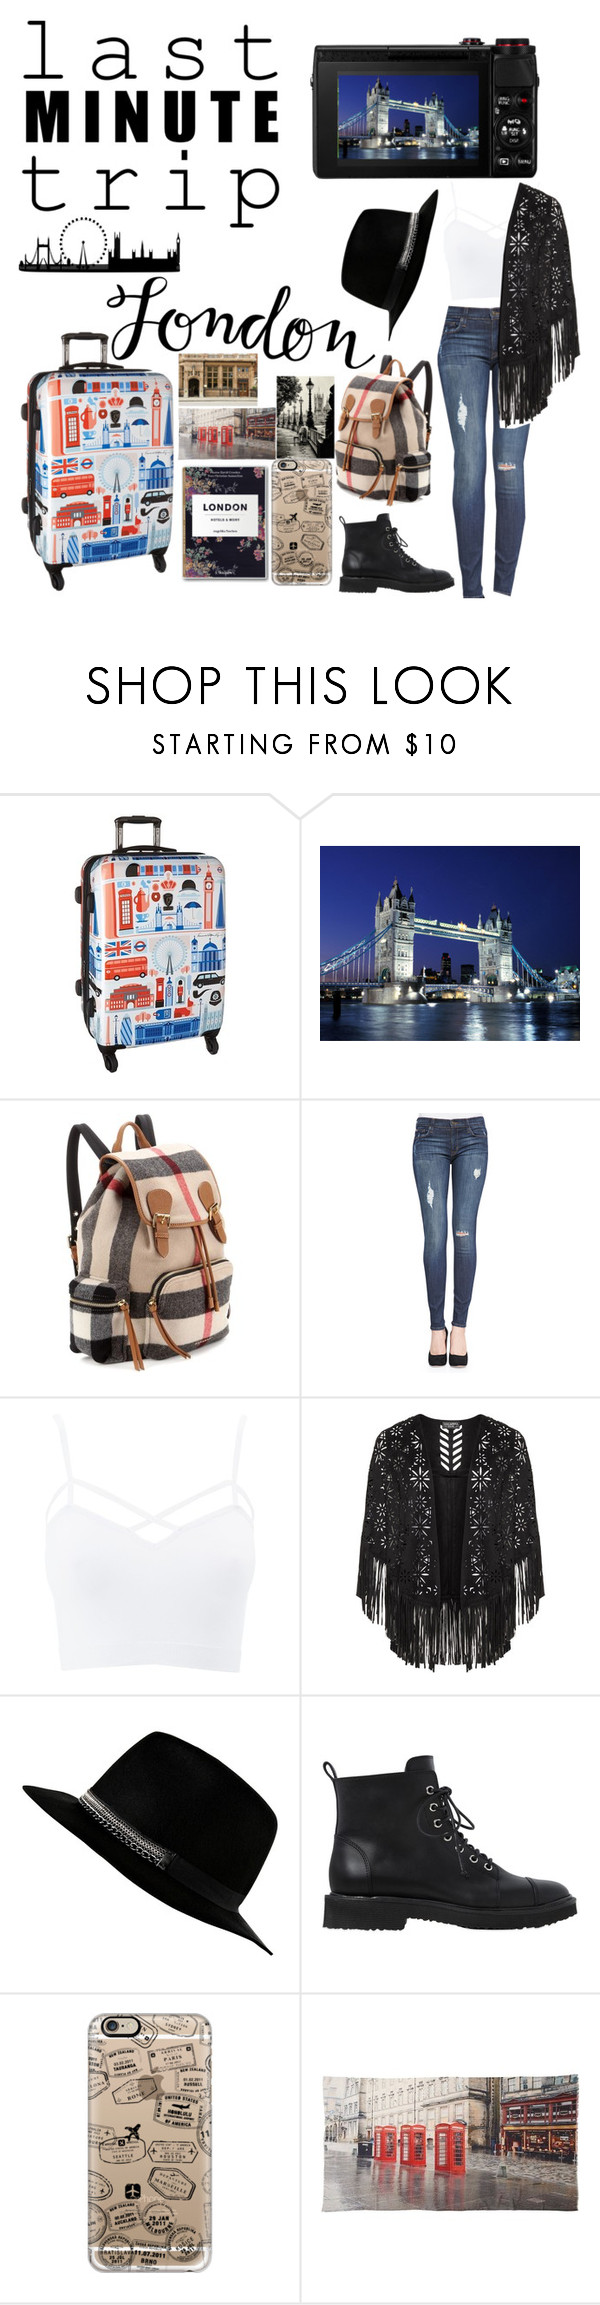 """""""London"""" by gwad ❤ liked on Polyvore featuring Heys, Burberry, Hudson, Charlotte Russe, Giuseppe Zanotti, Casetify, Tolani and plus size clothing"""